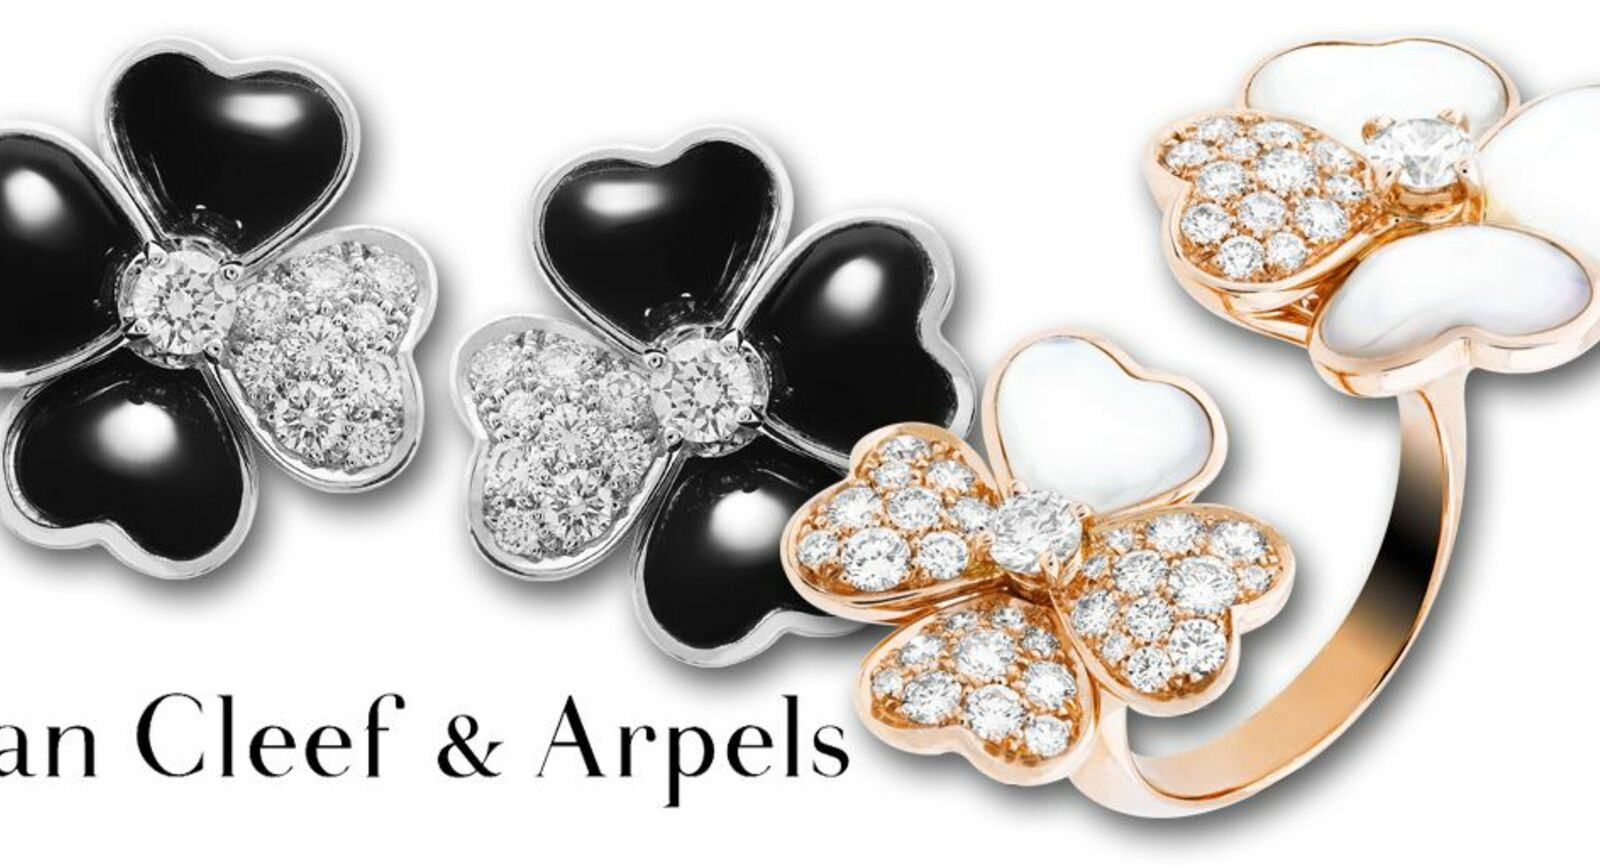 A World of Harmony in the new Van Cleef & Arpels collection